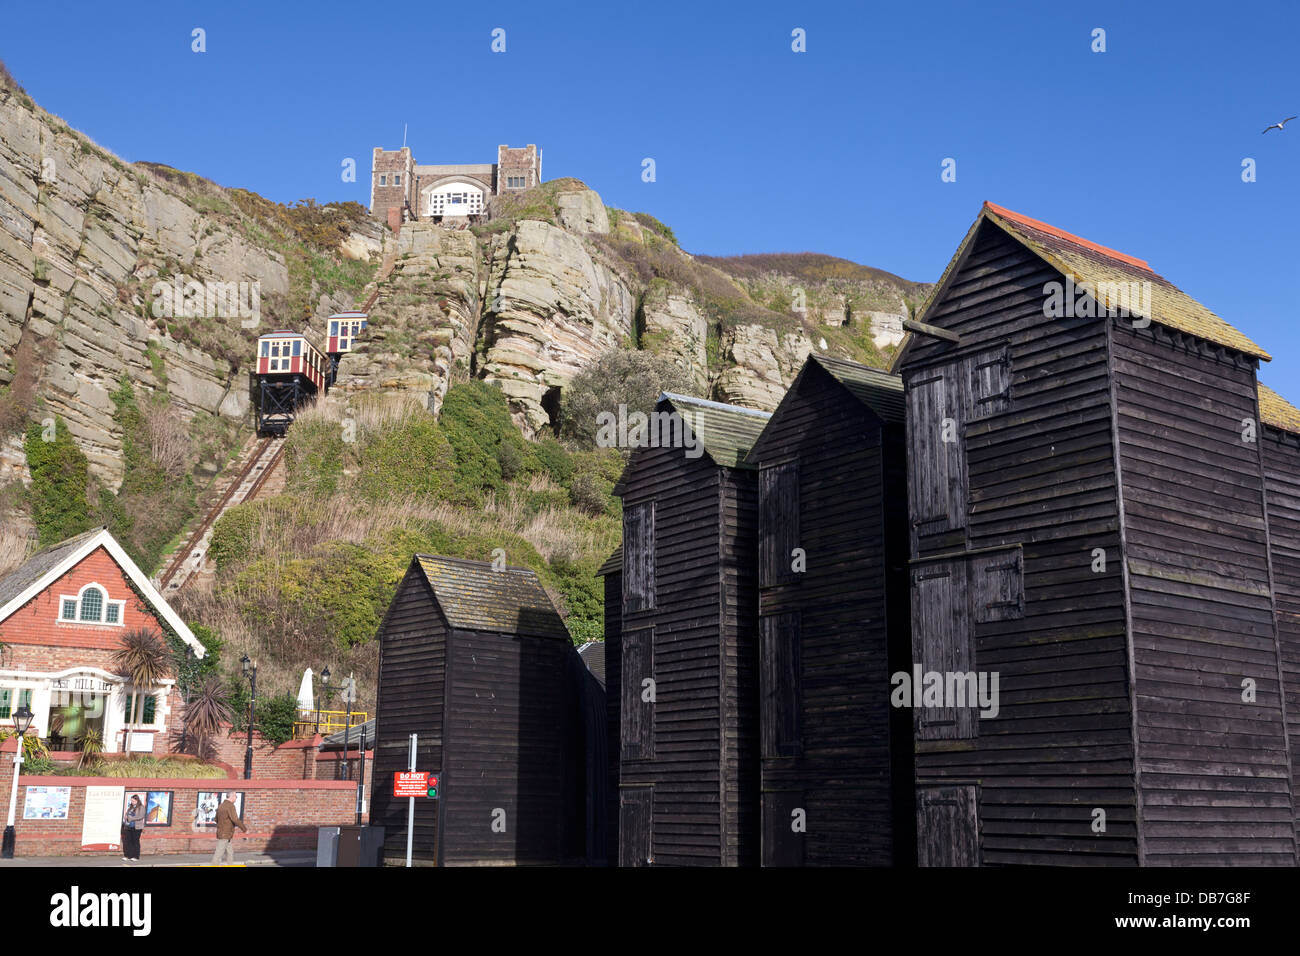 Net Huts in Hastings Old Town, with East Hill funicular railway in background, East Sussex - Stock Image